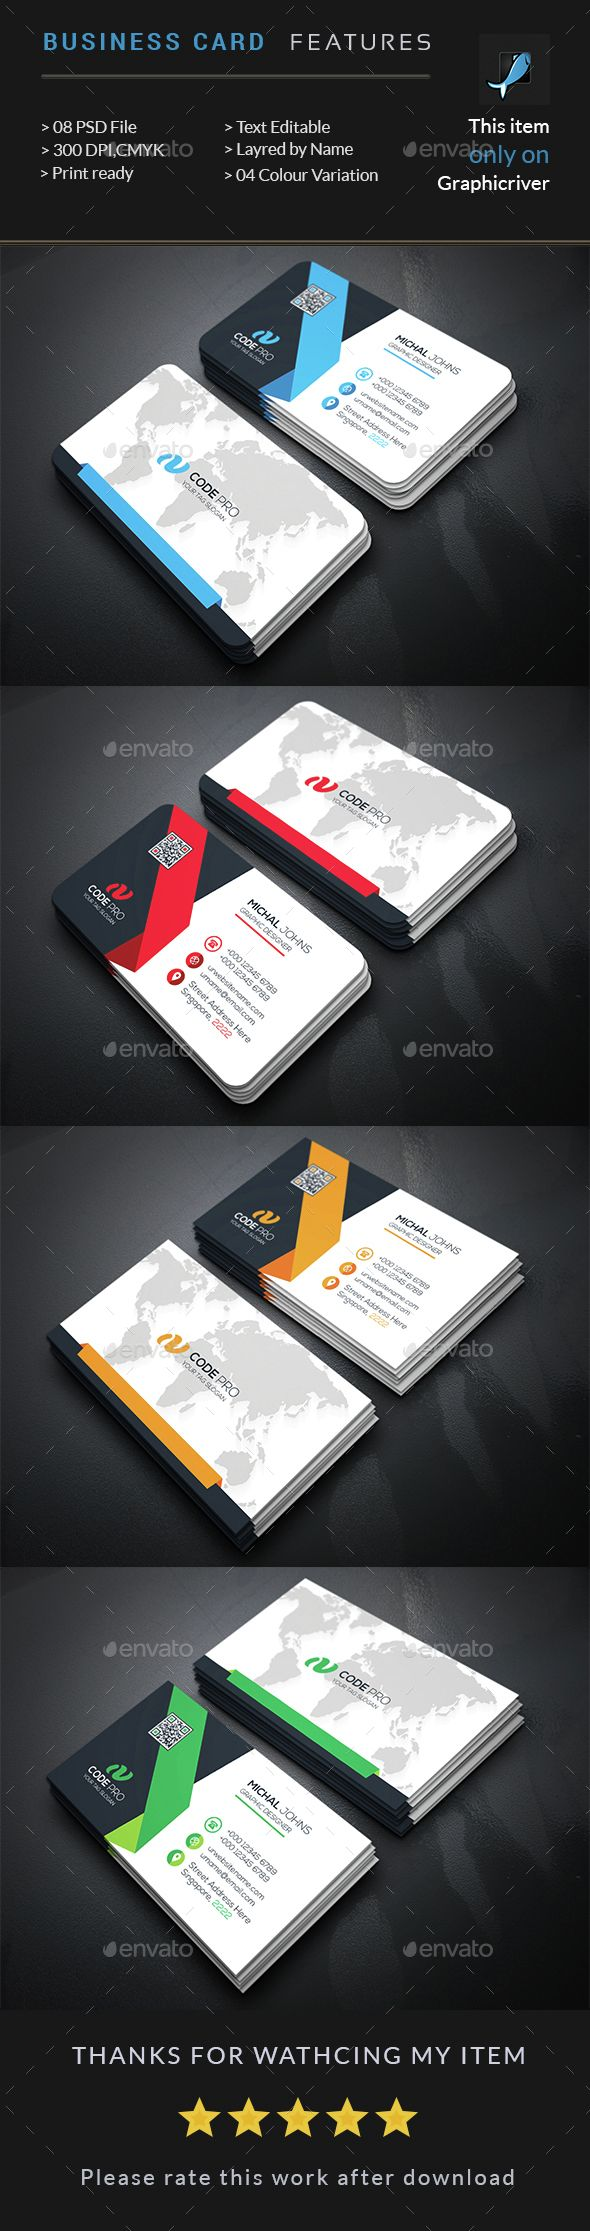 505 best Business Card Inspiration images on Pinterest   Business ...